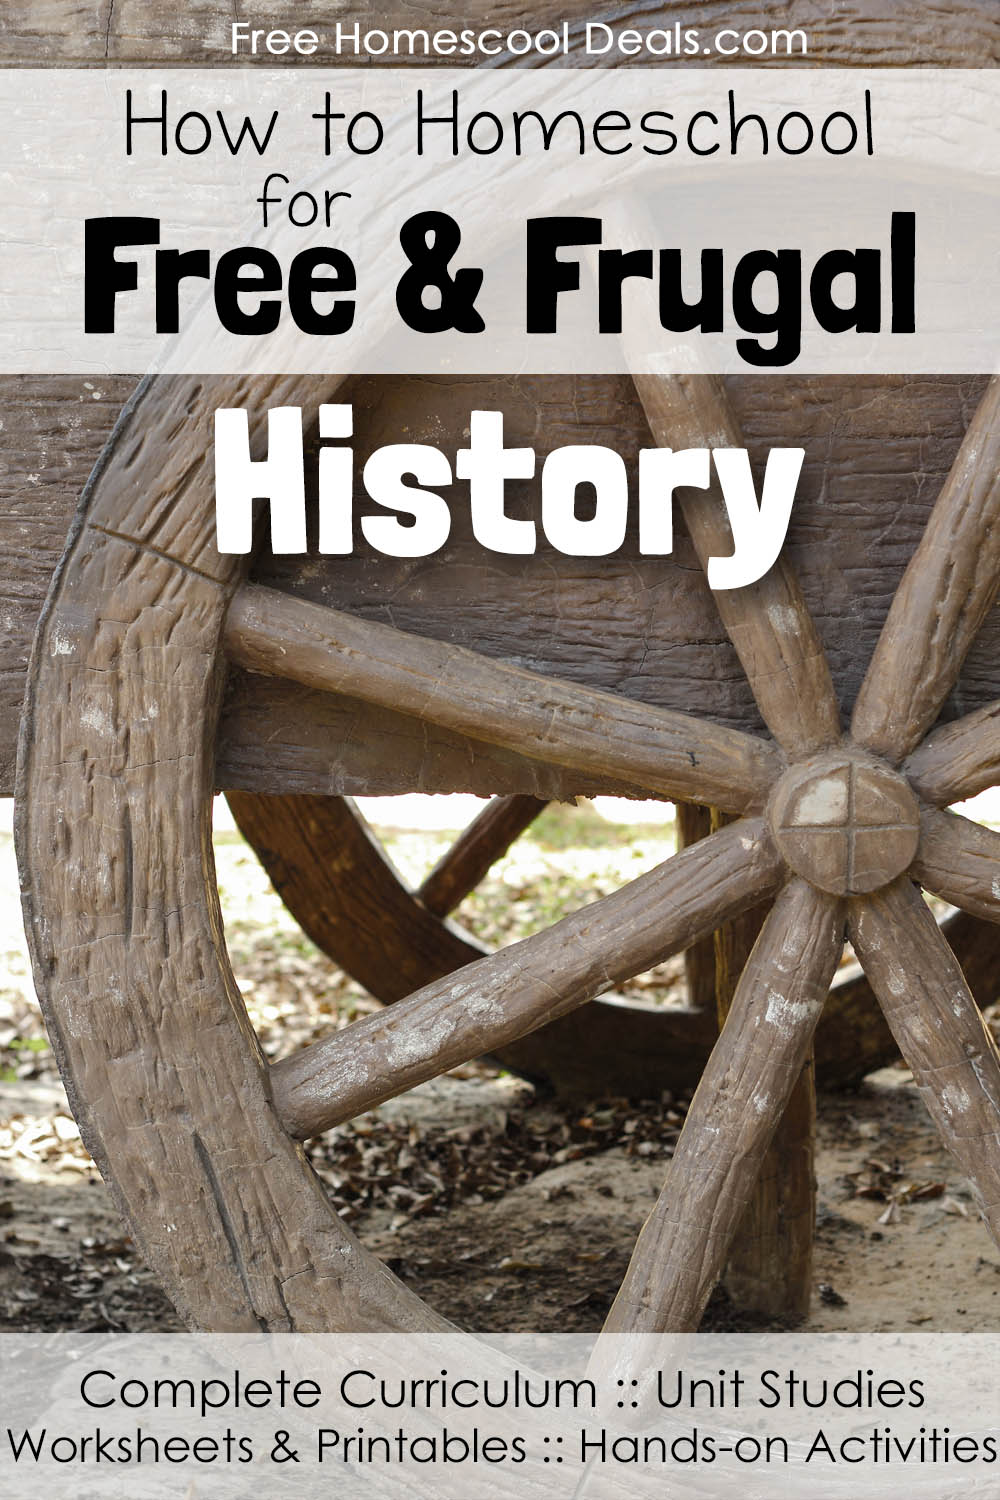 How to Homeschool for Free and Frugal: History